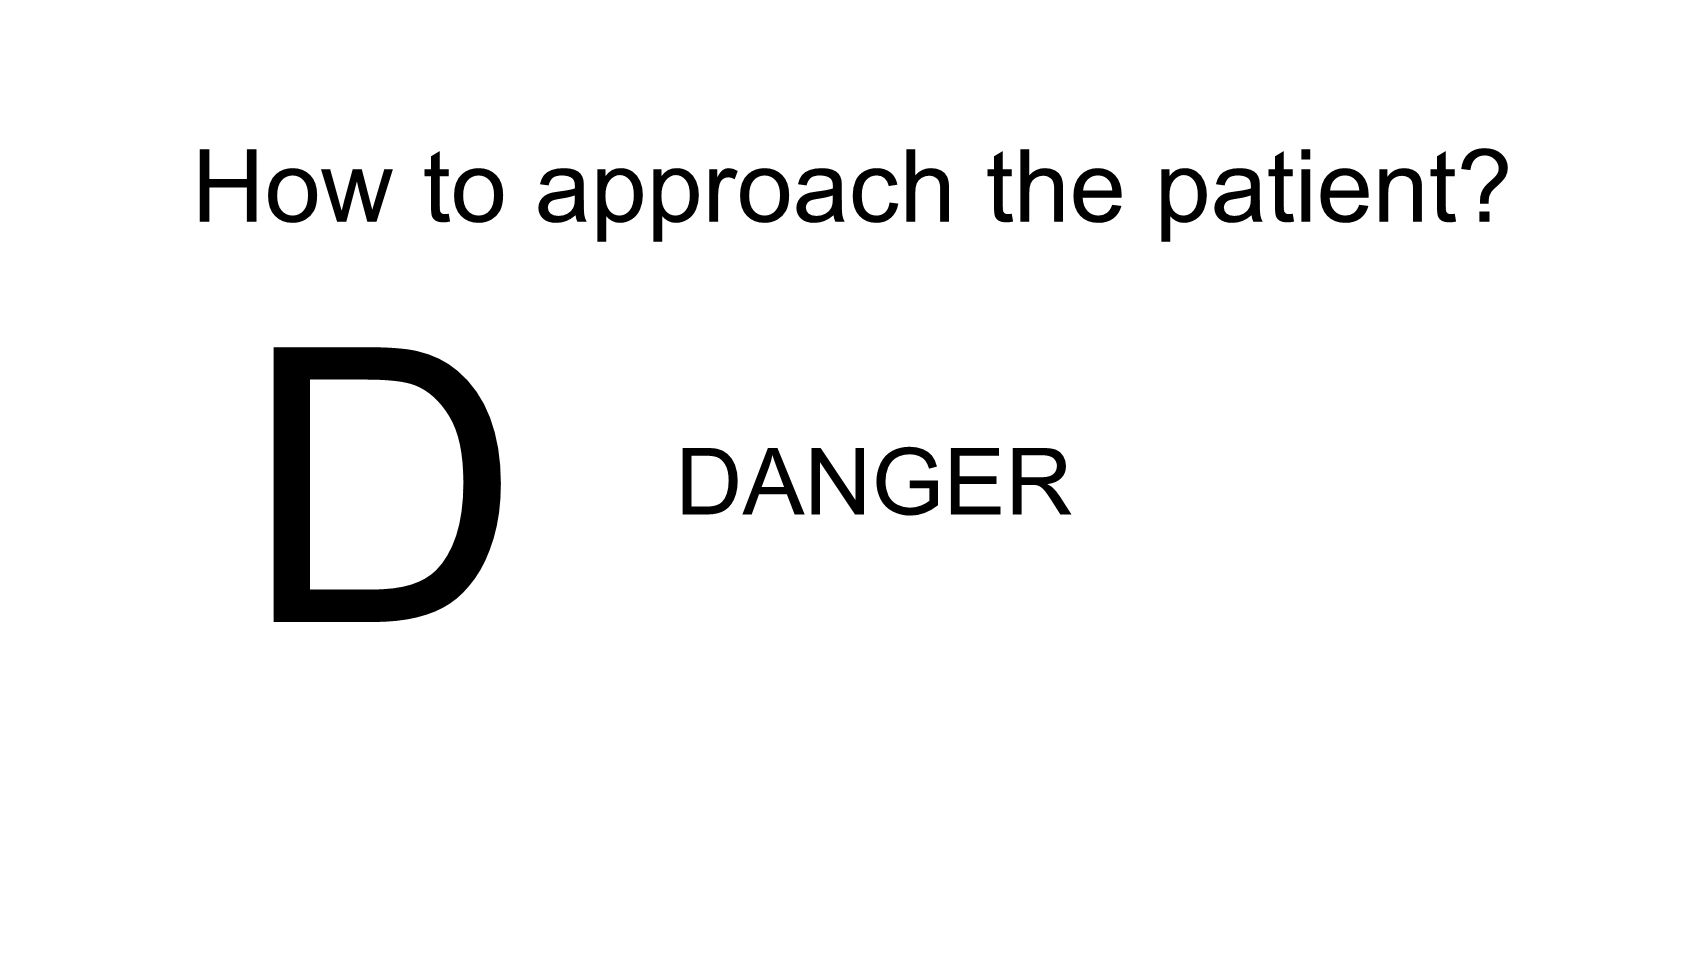 How to approach the patient? D DANGER